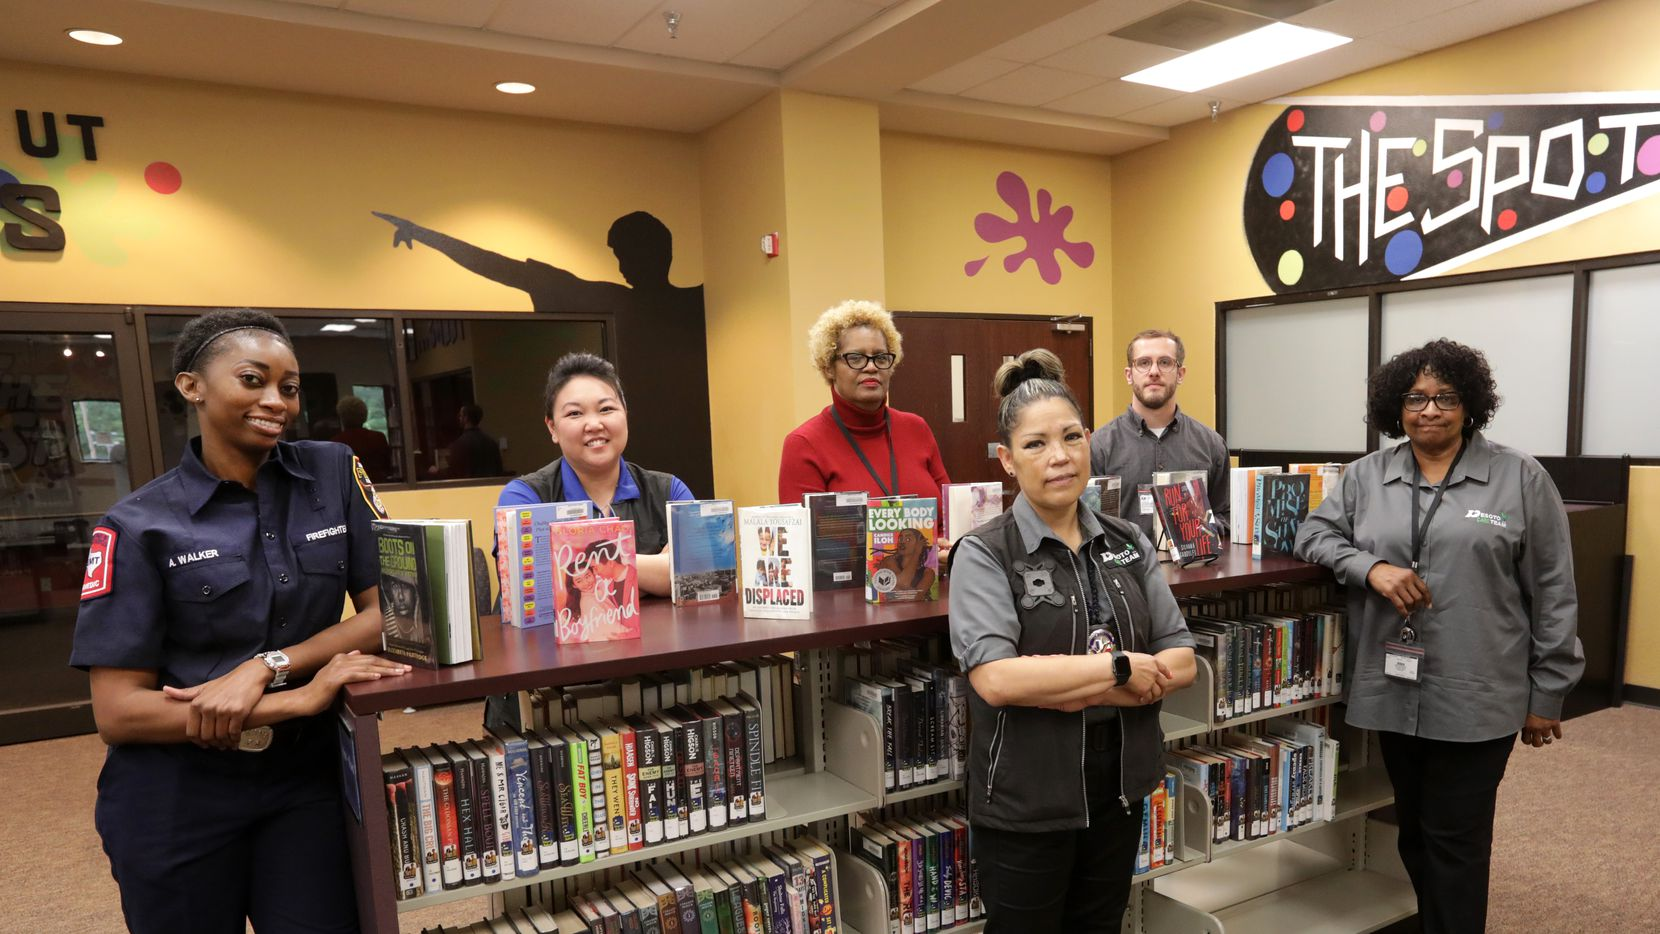 Members of the DeSoto Care Team pose for a photograph at the Library in DeSoto, TX, on May 24, 2021. The Care Team includes police officers, health care experts and a victim's advocate.  (Jason Janik/Special Contributor)